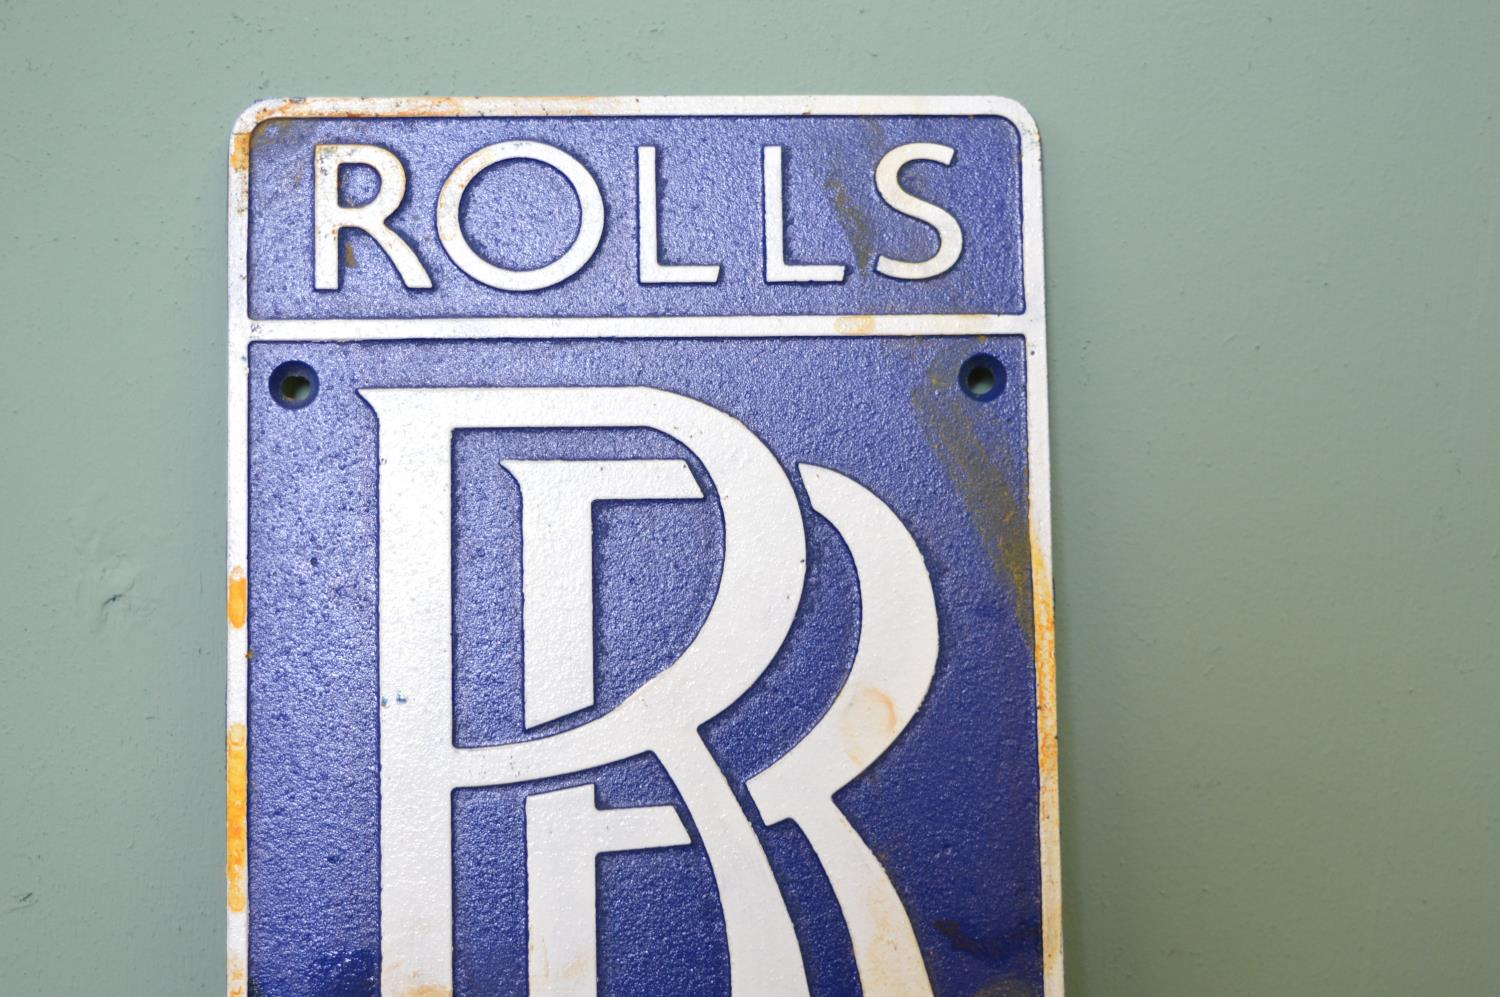 Rolls Royce cast iron advertising sign. - Image 2 of 2